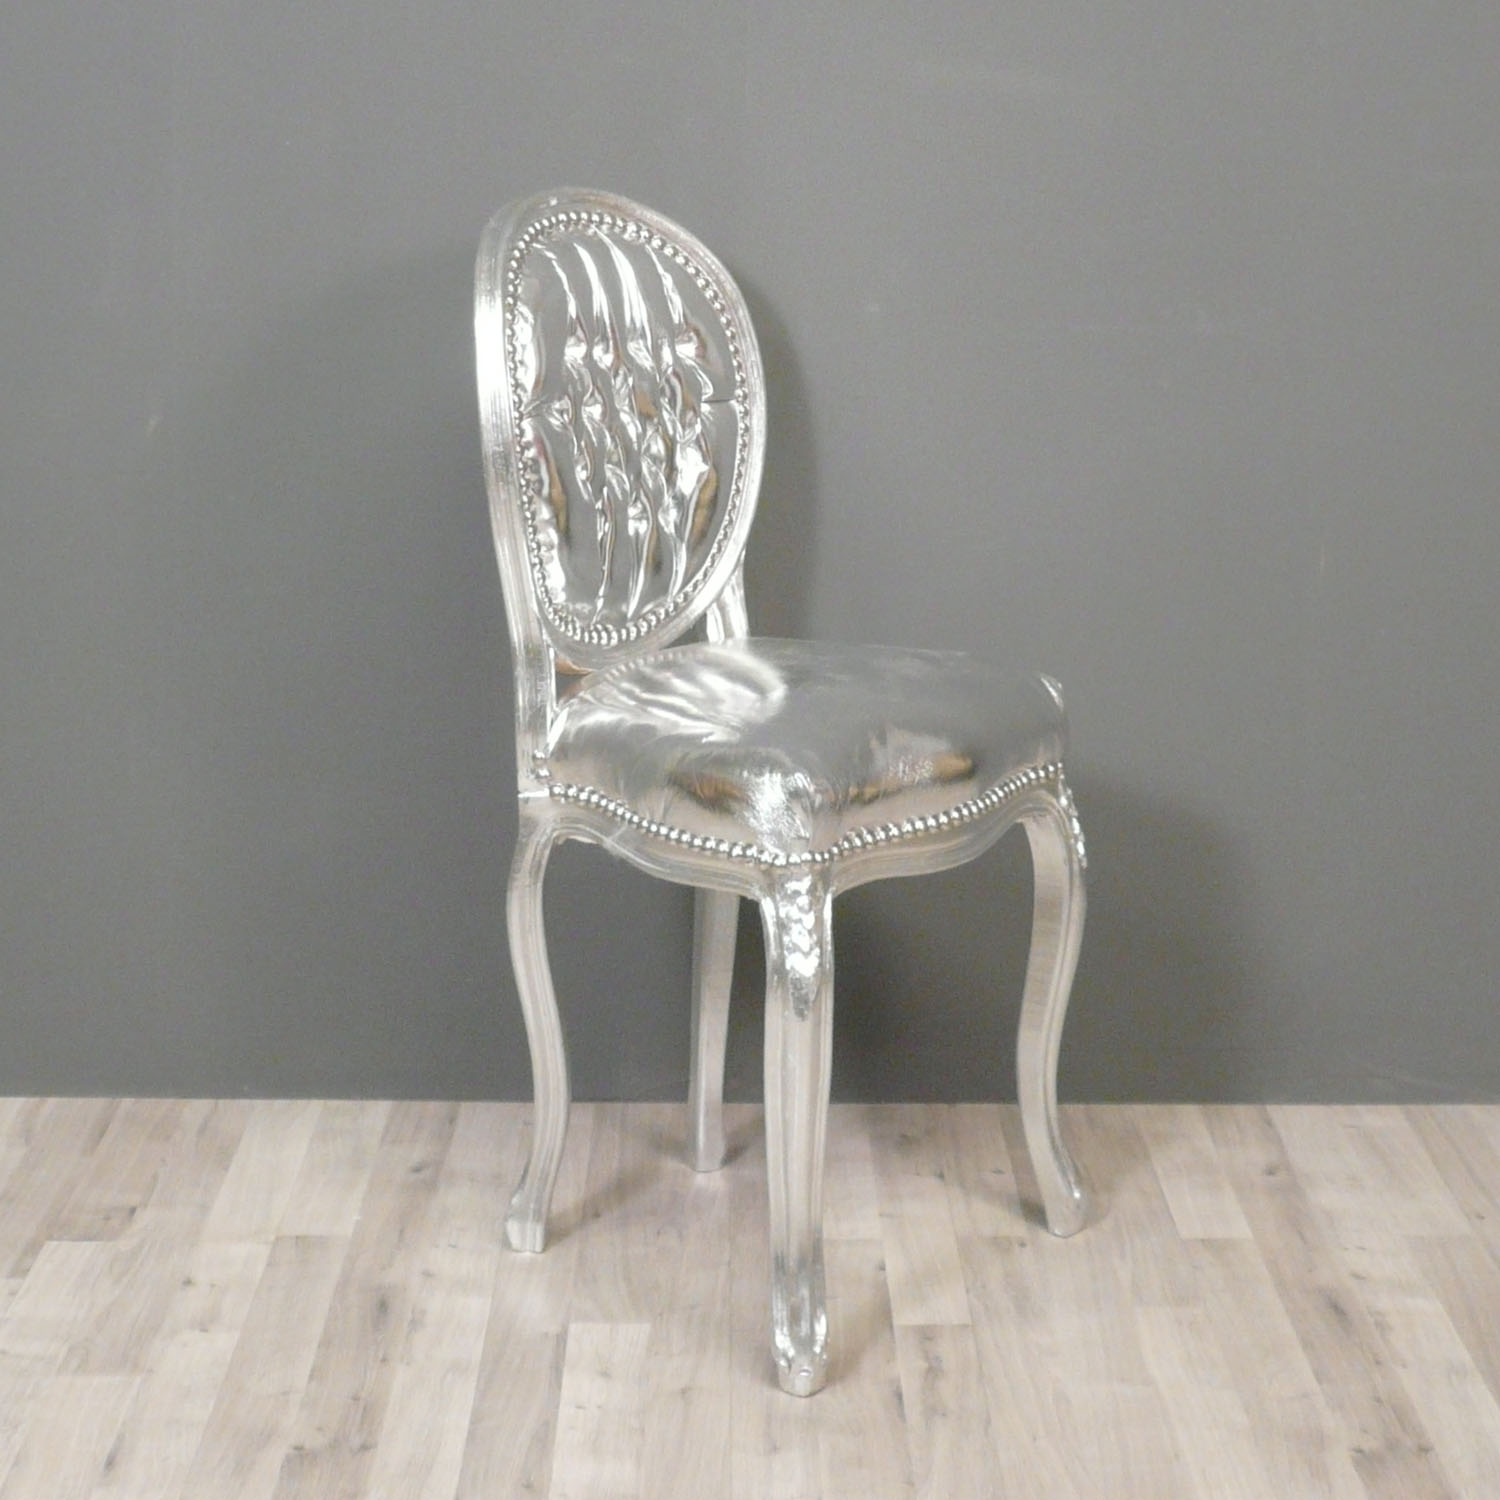 Petite chaise baroque style Louis XV - Chaises baroques